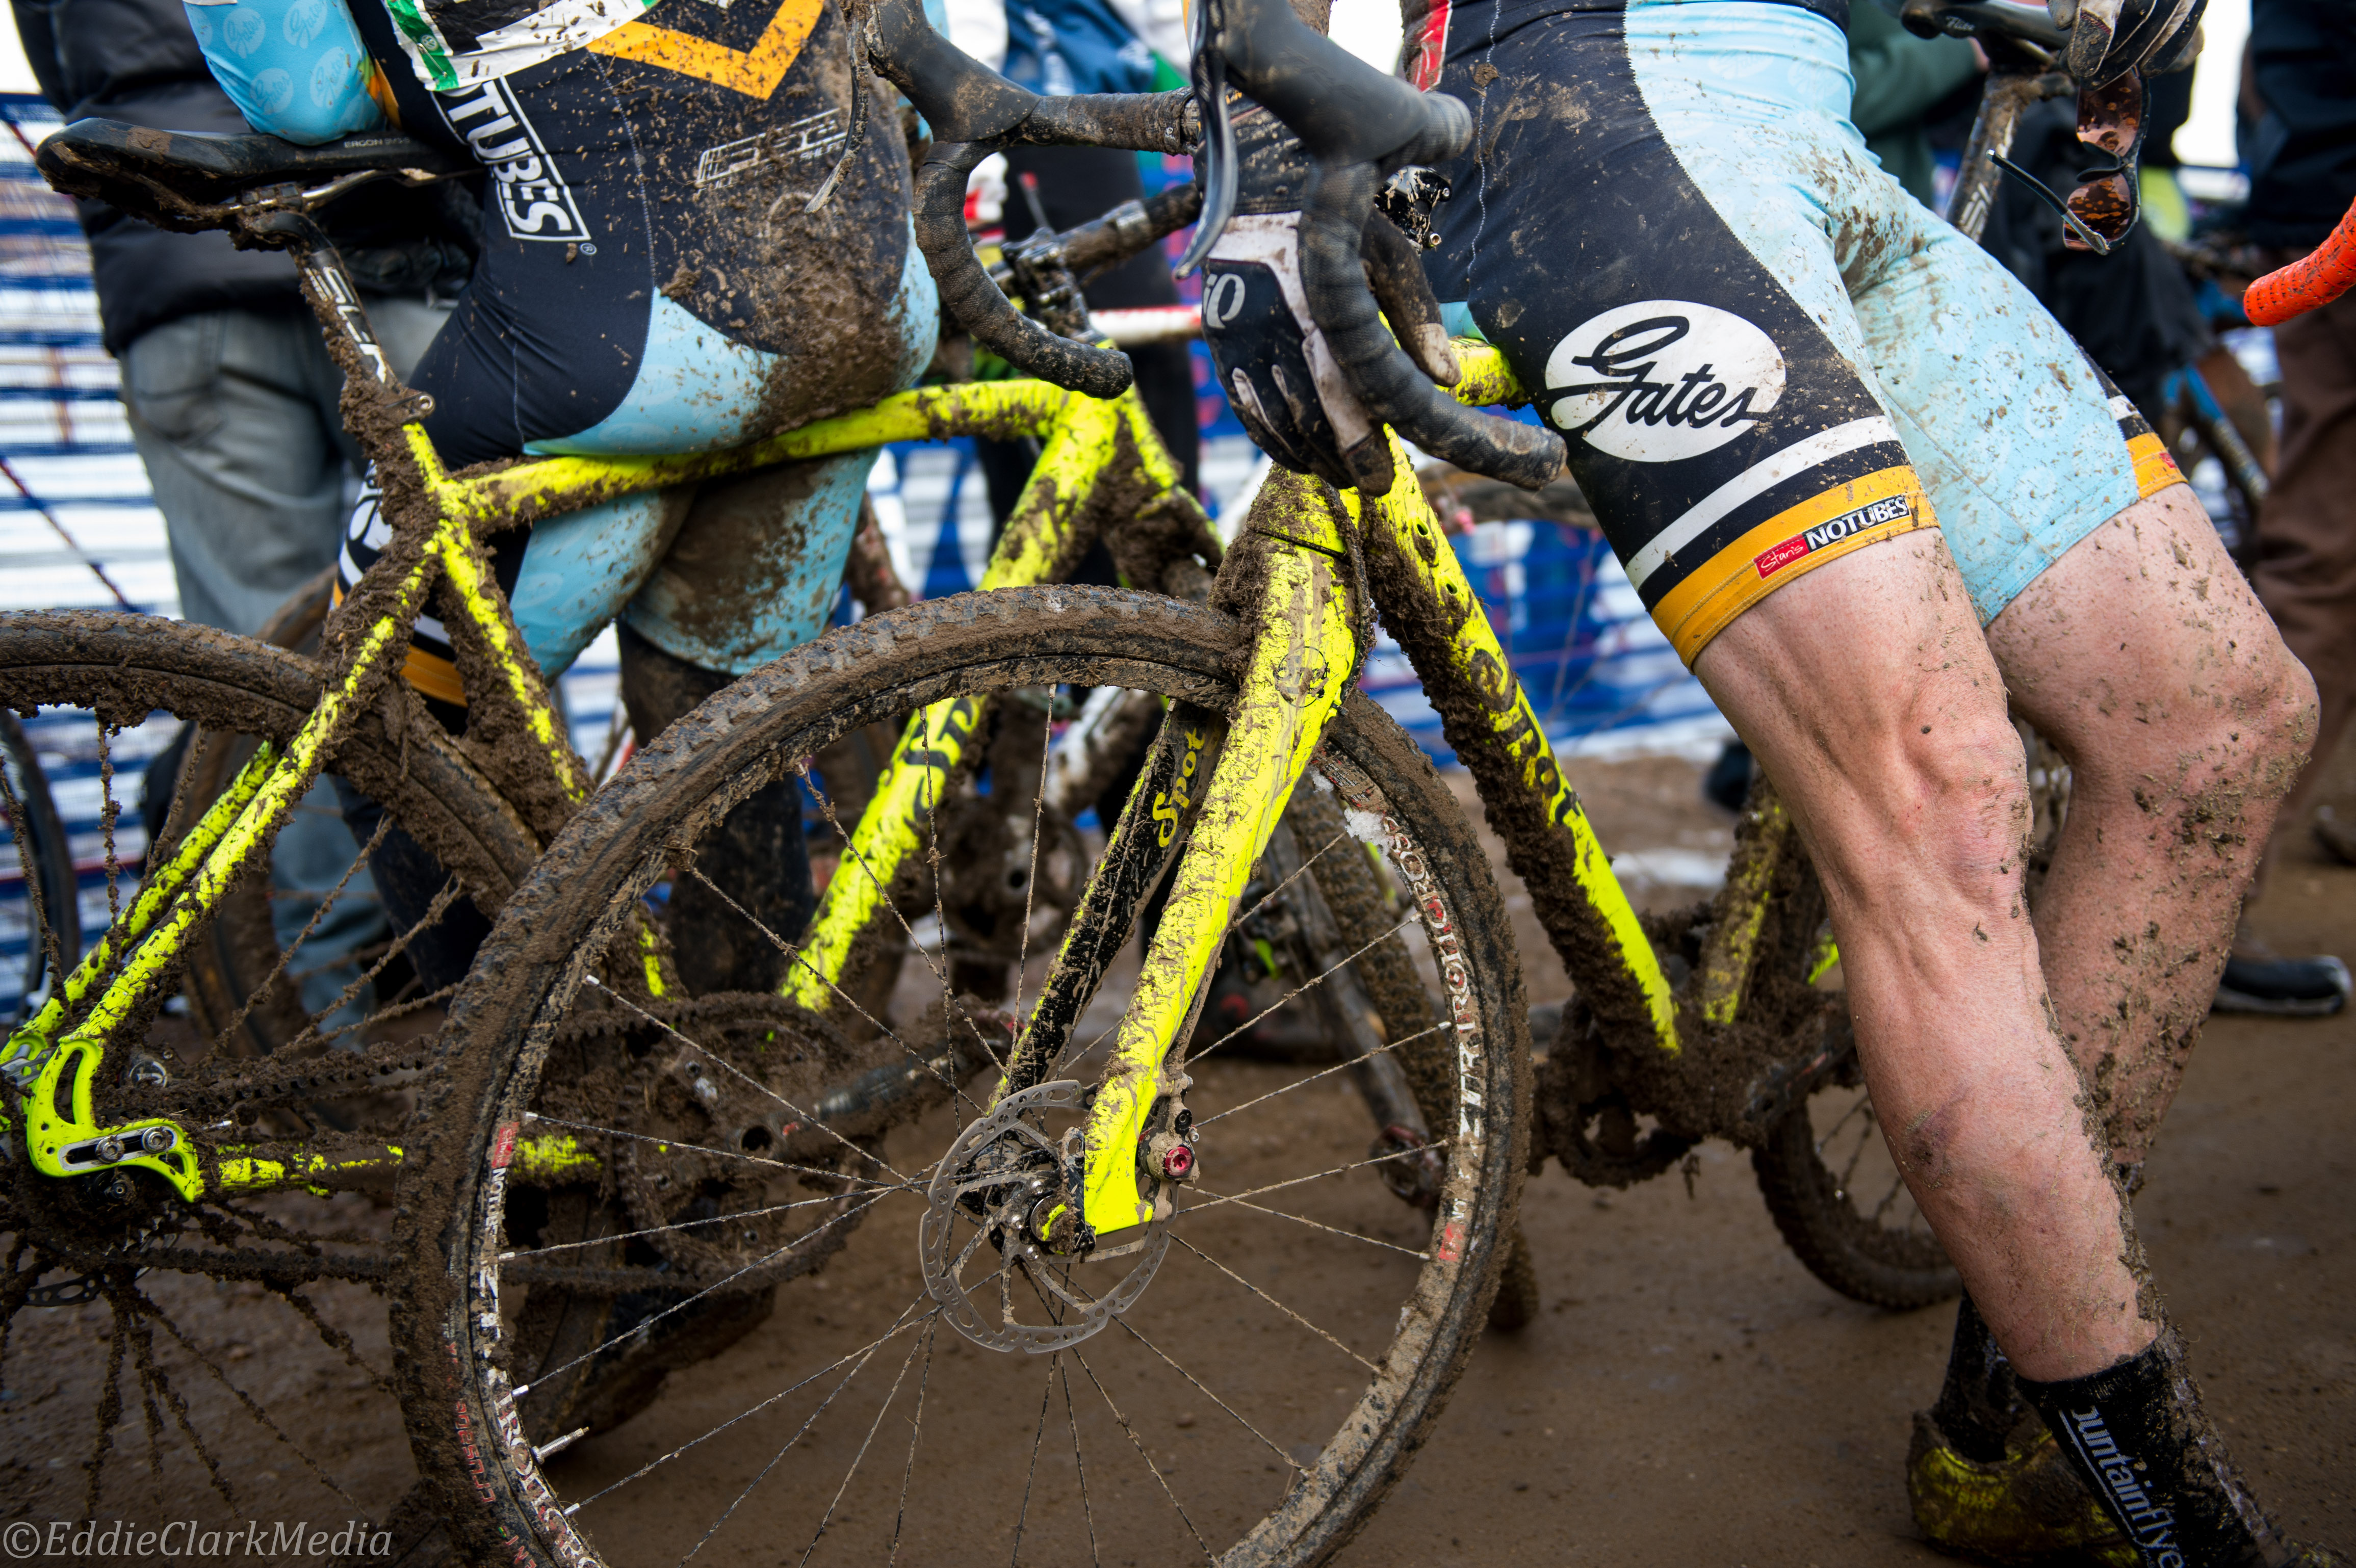 Gates CDX Carbon Drive and TRP Hylex brakes just ignore the mud